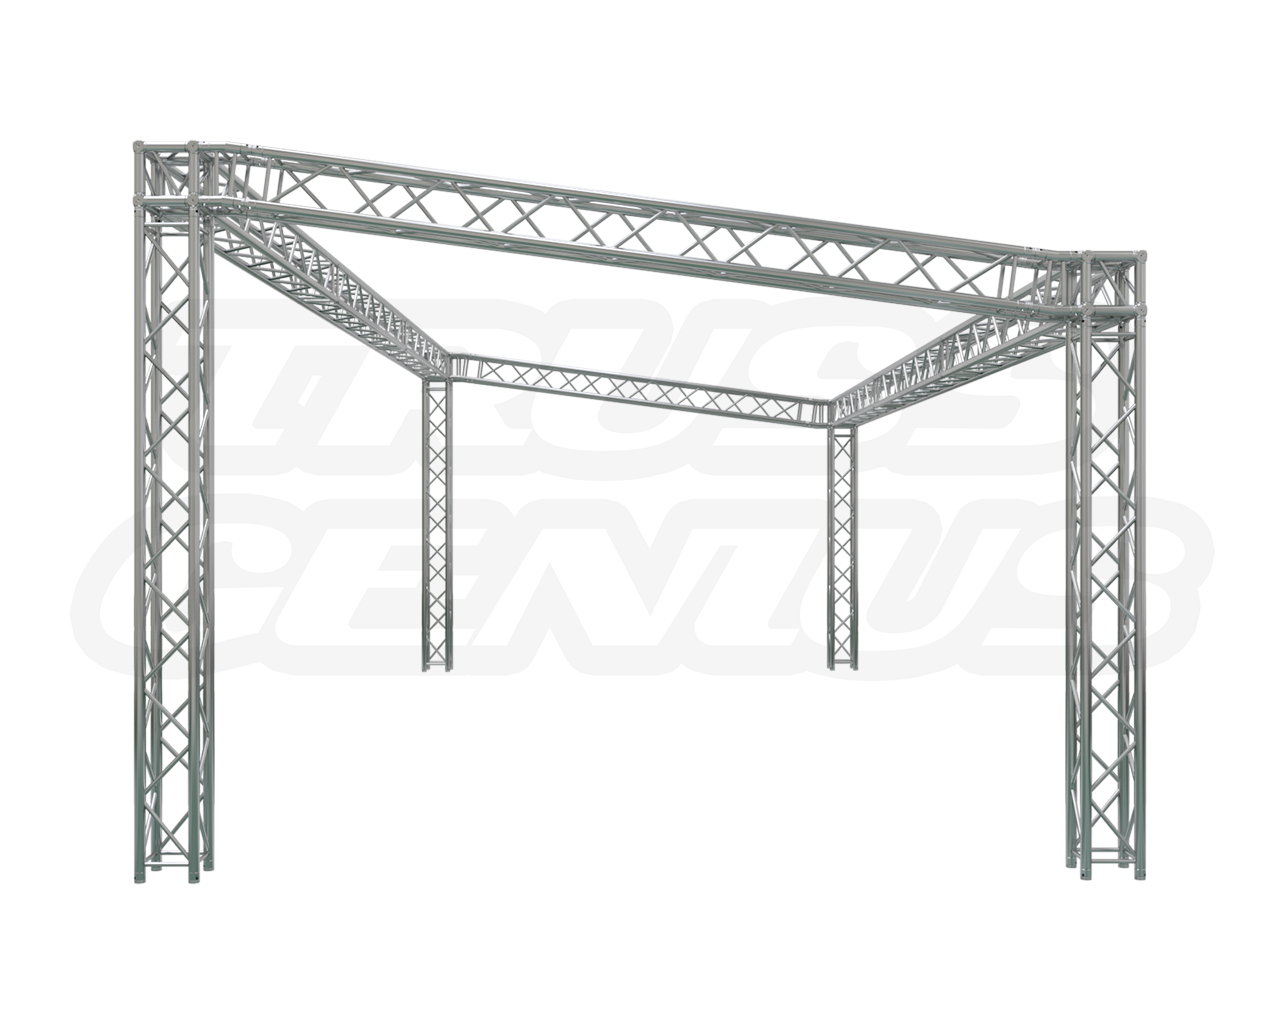 dj amazon musical mobile instruments triangular lighting triangle system wide truss ft com dp trussing crank